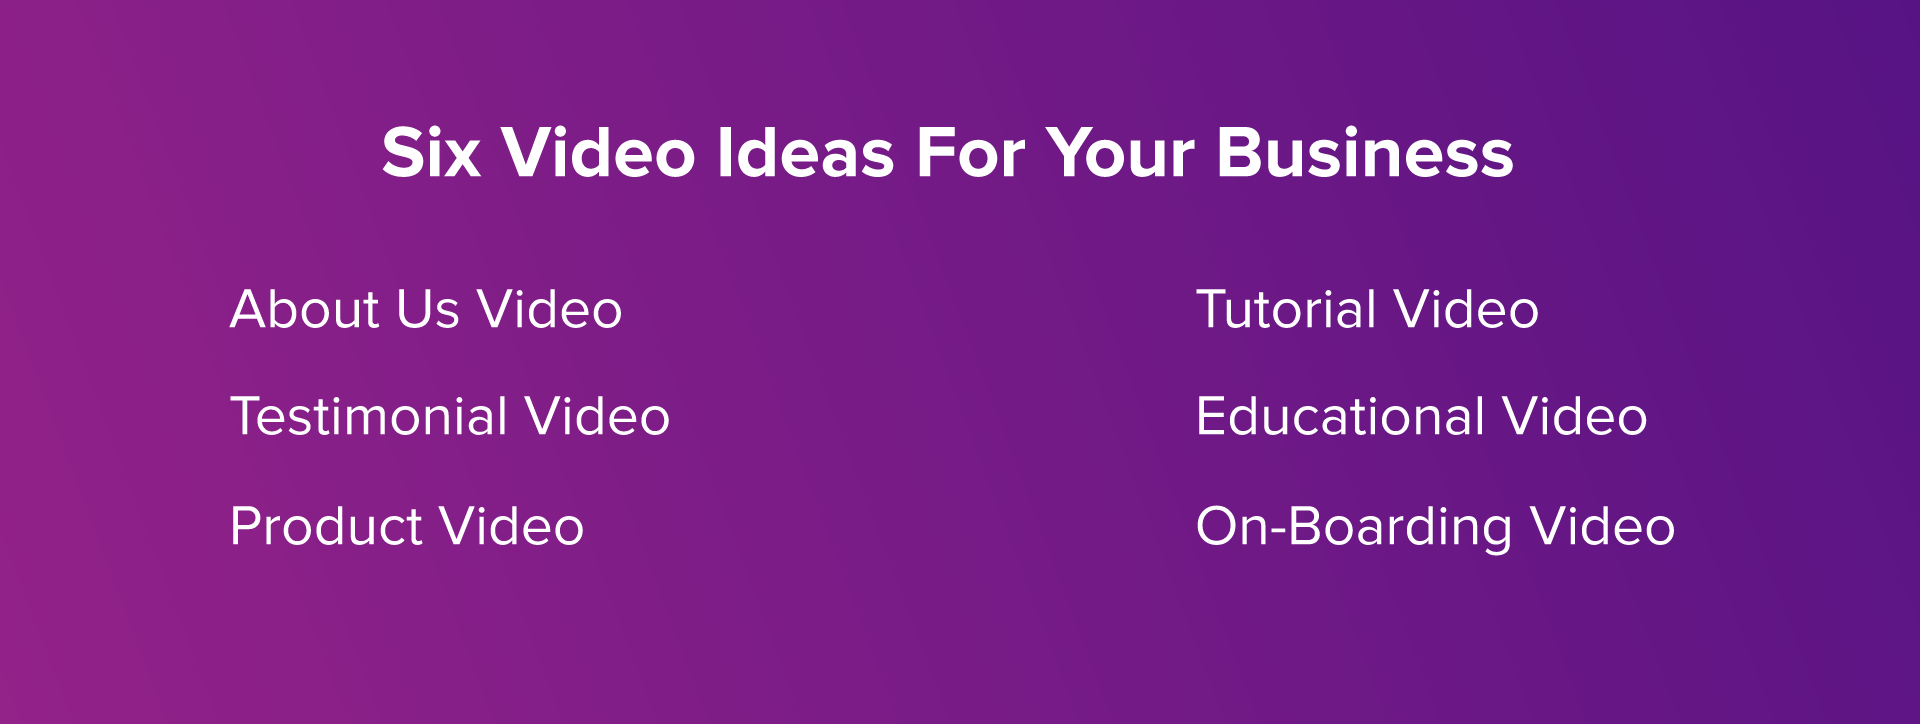 Six ways you can use videos to rank better on search engines like YouTube and Google